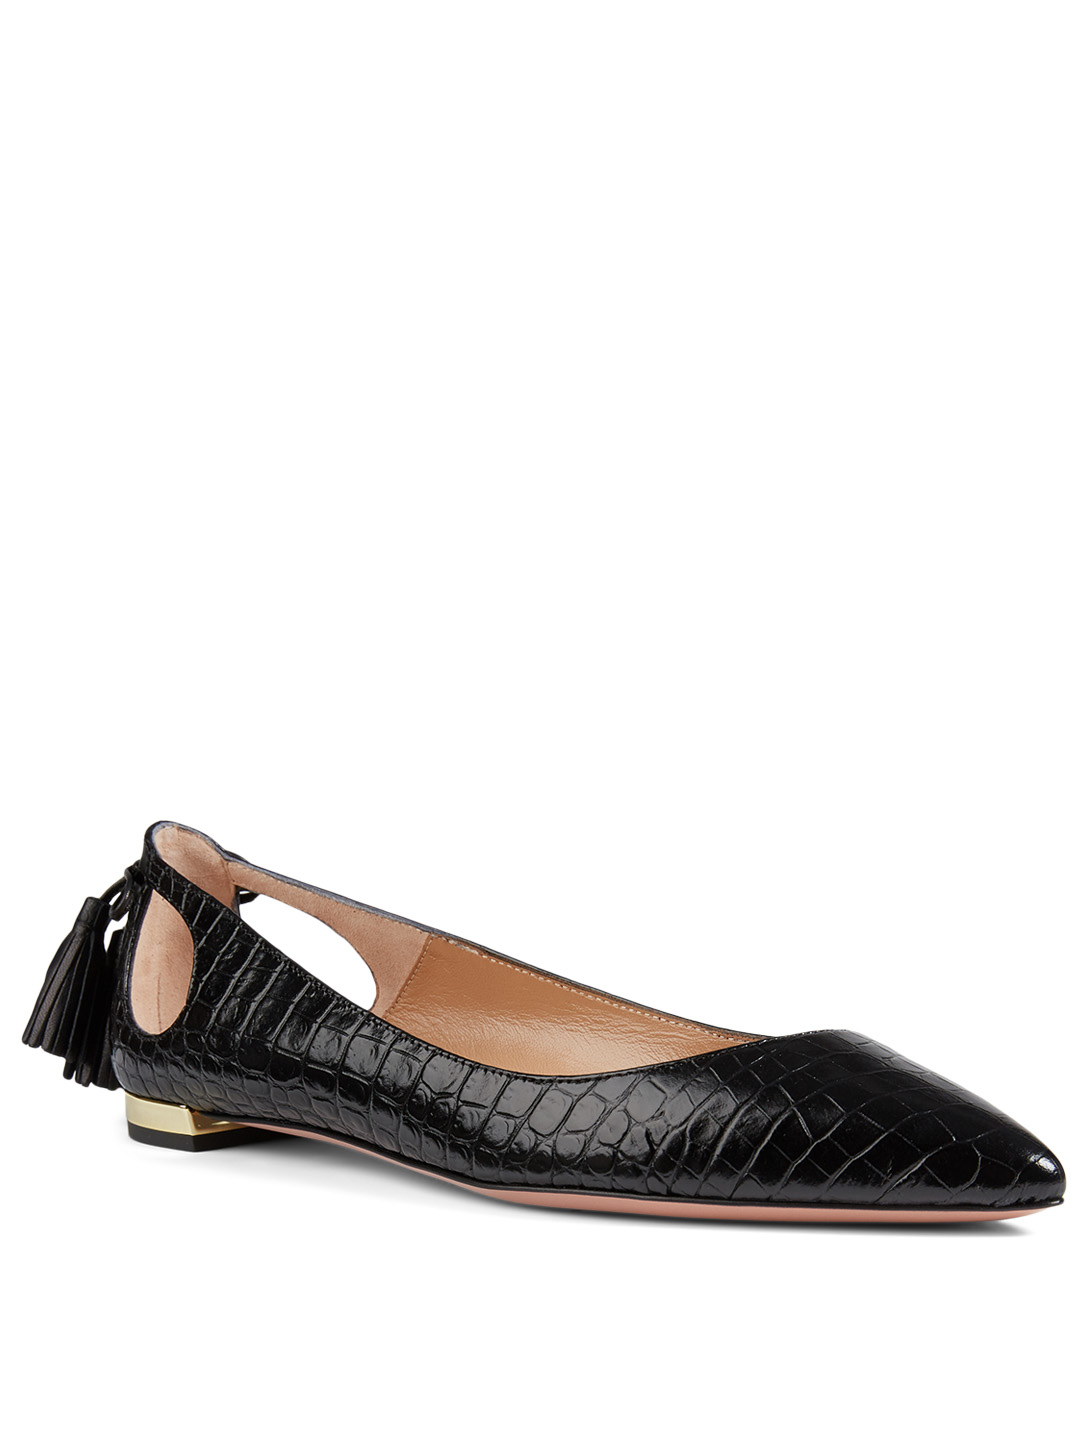 AQUAZZURA Forever Marilyn Croc-Embossed Leather Flats Women's Black